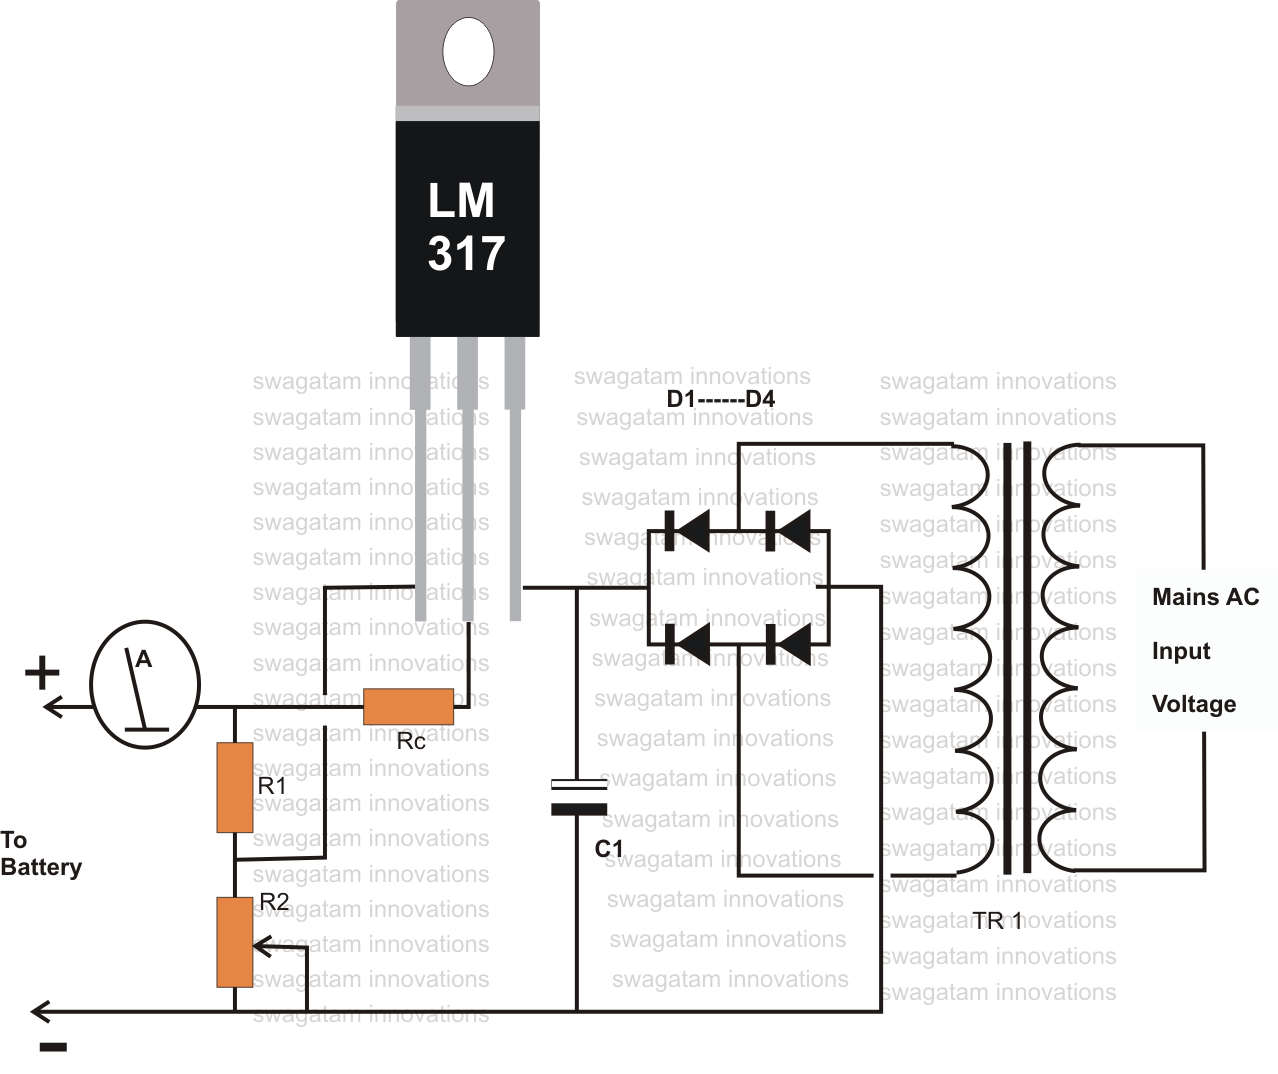 12 Volt Battery Charger Diagram Circuit Diagram Battery Charger Circuit Simple Electronics